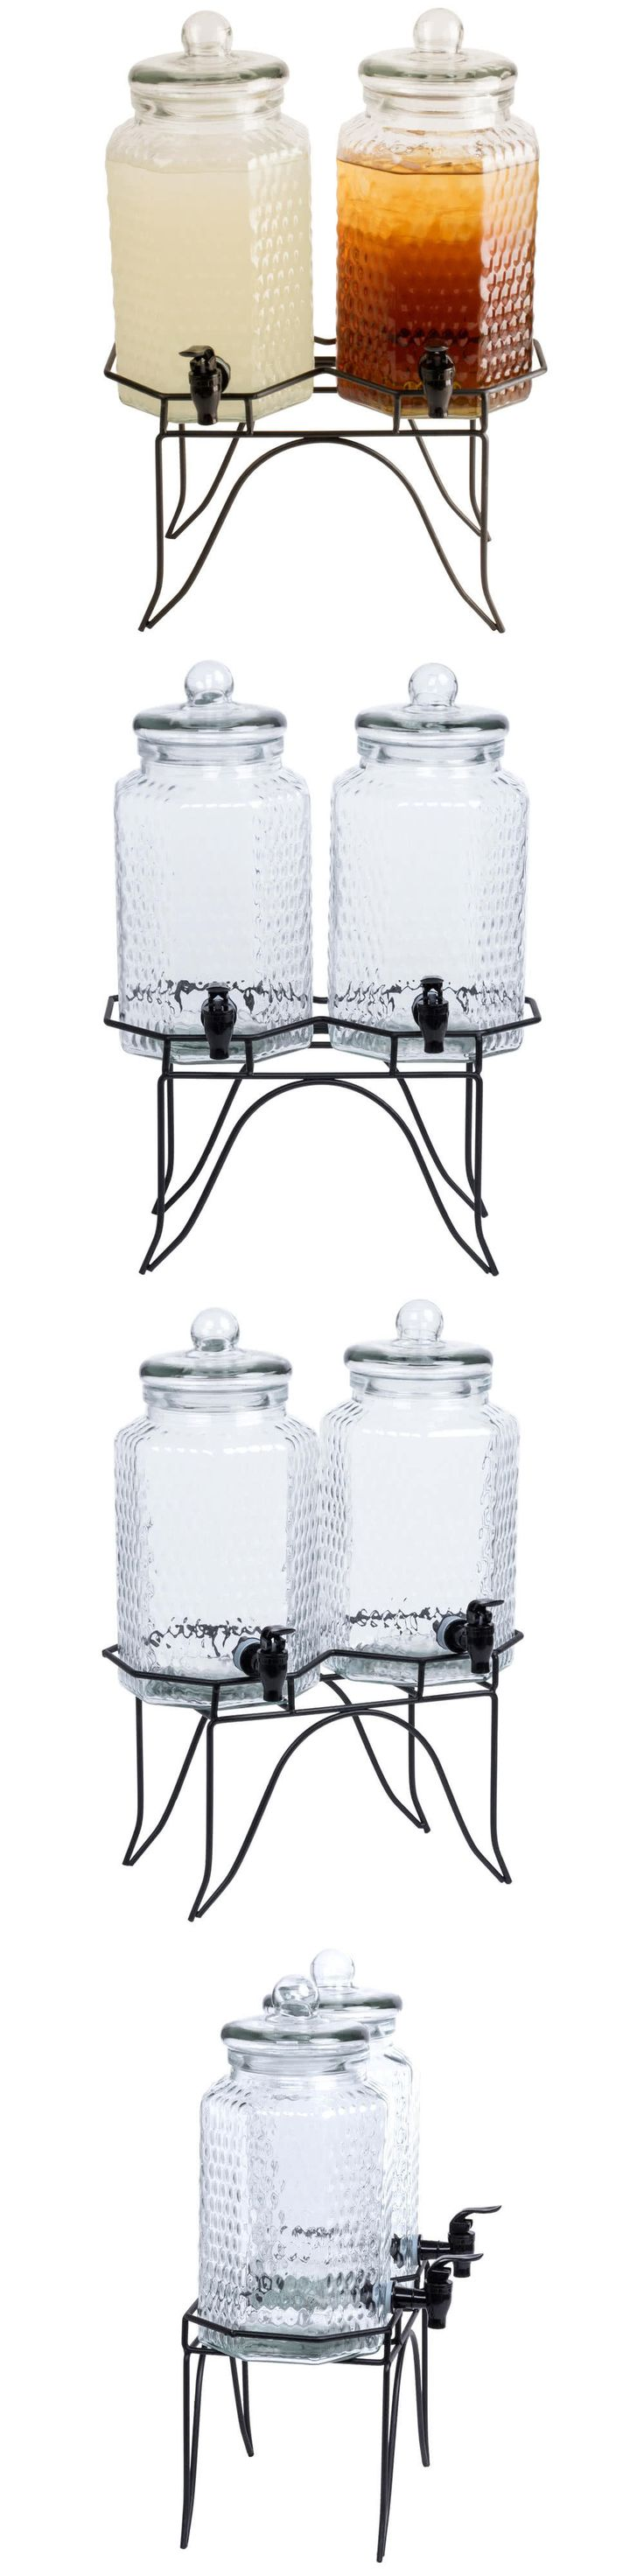 Food And Drink: Double 1 Gallon Glass Beverage Dispenser With Metal Stand 553100Dblkit -> BUY IT NOW ONLY: $45 on eBay!